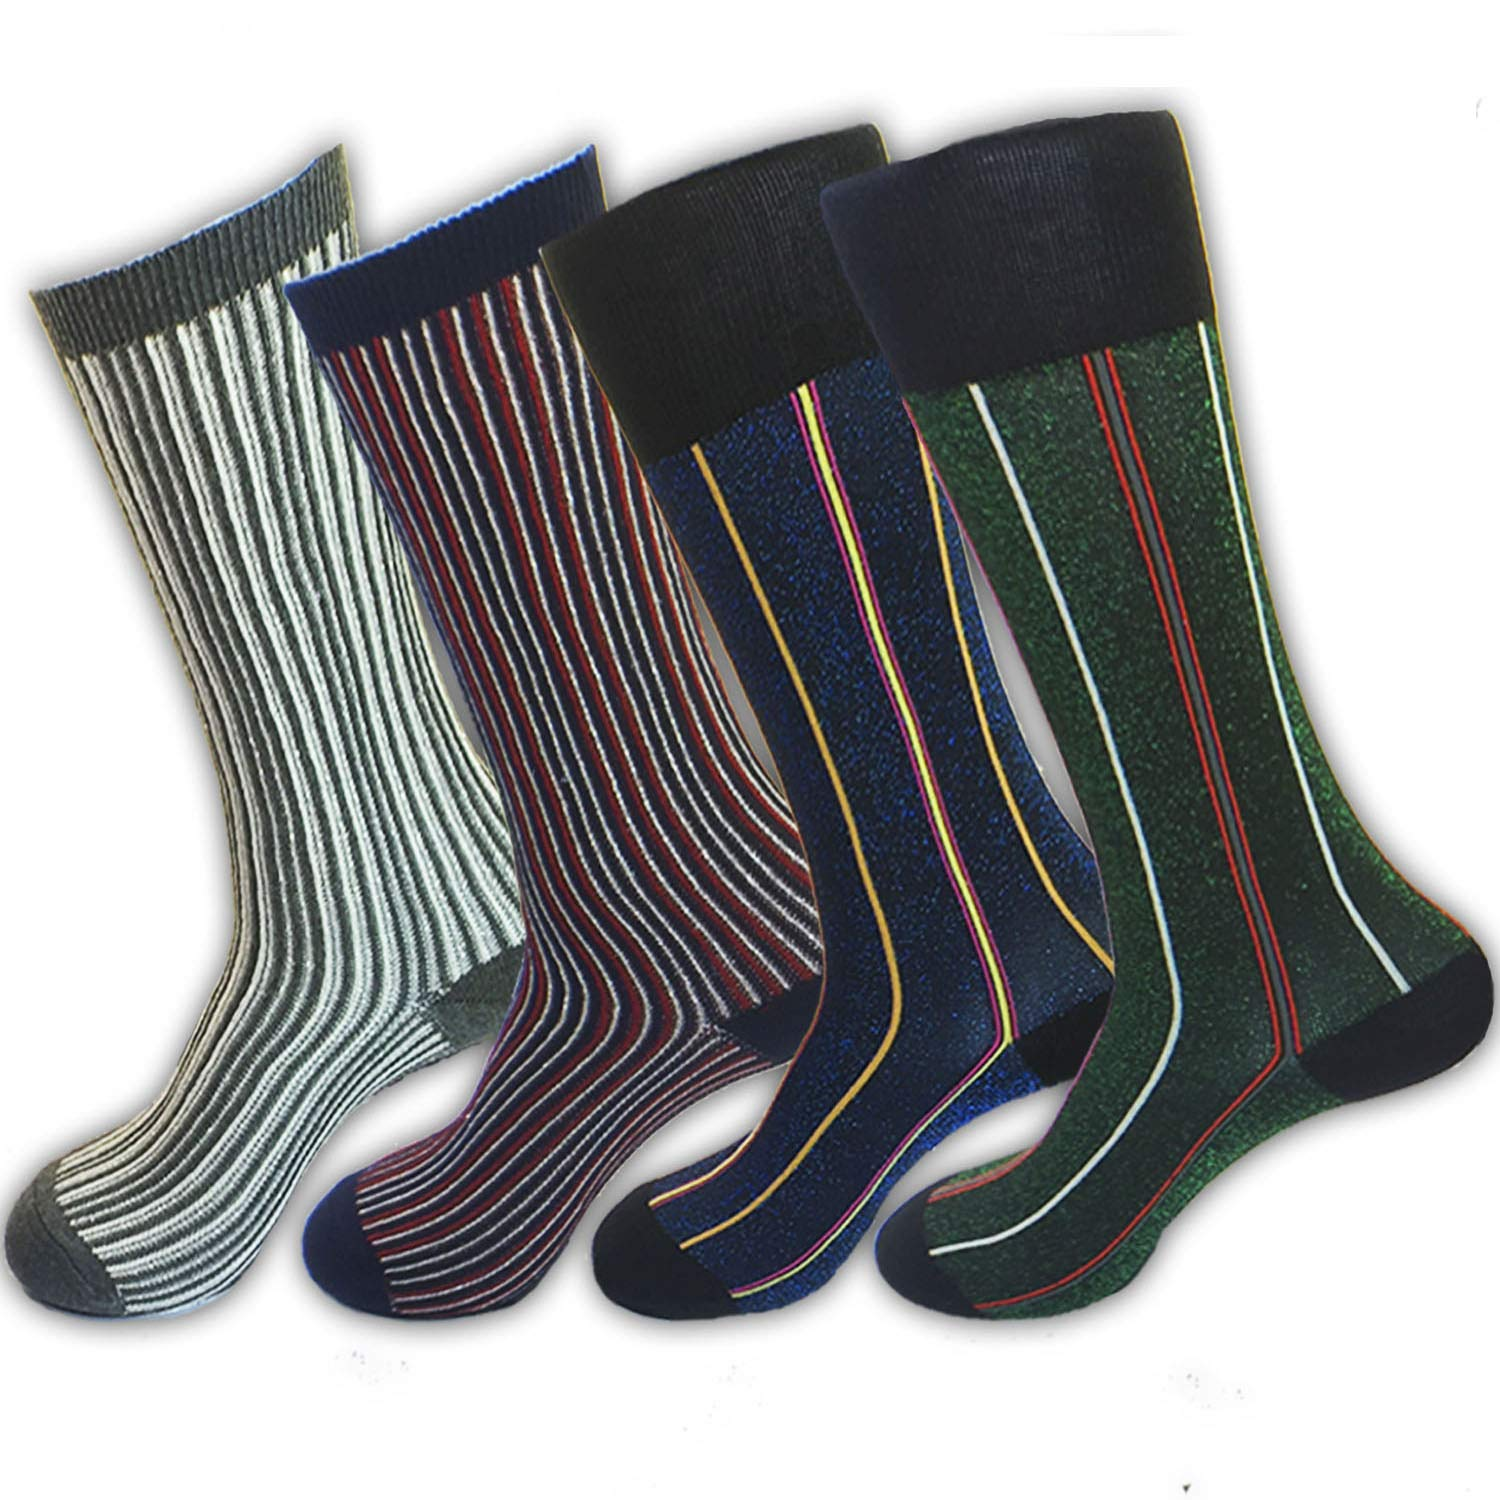 4 Pack Fashionable Women's/Girl's Cotton Comfort Bling Shinning Patterned Knit High Dress Crew Socks